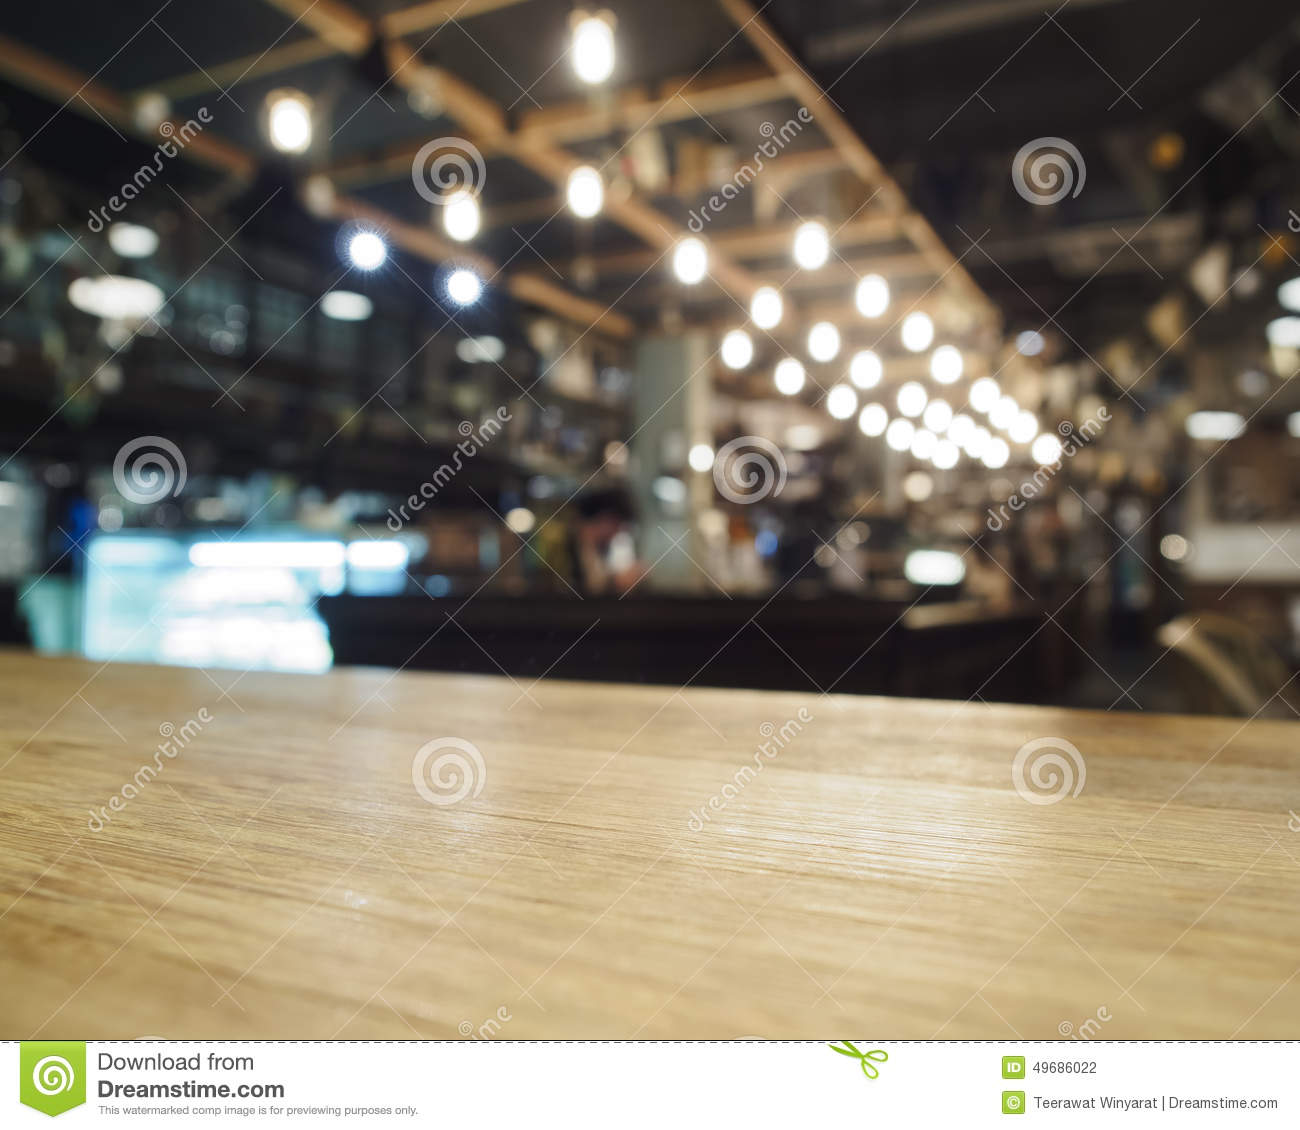 table and chair rental prices tub chairs big lots top of with bar cafe restaurant blurred background stock photo - image: 49686022